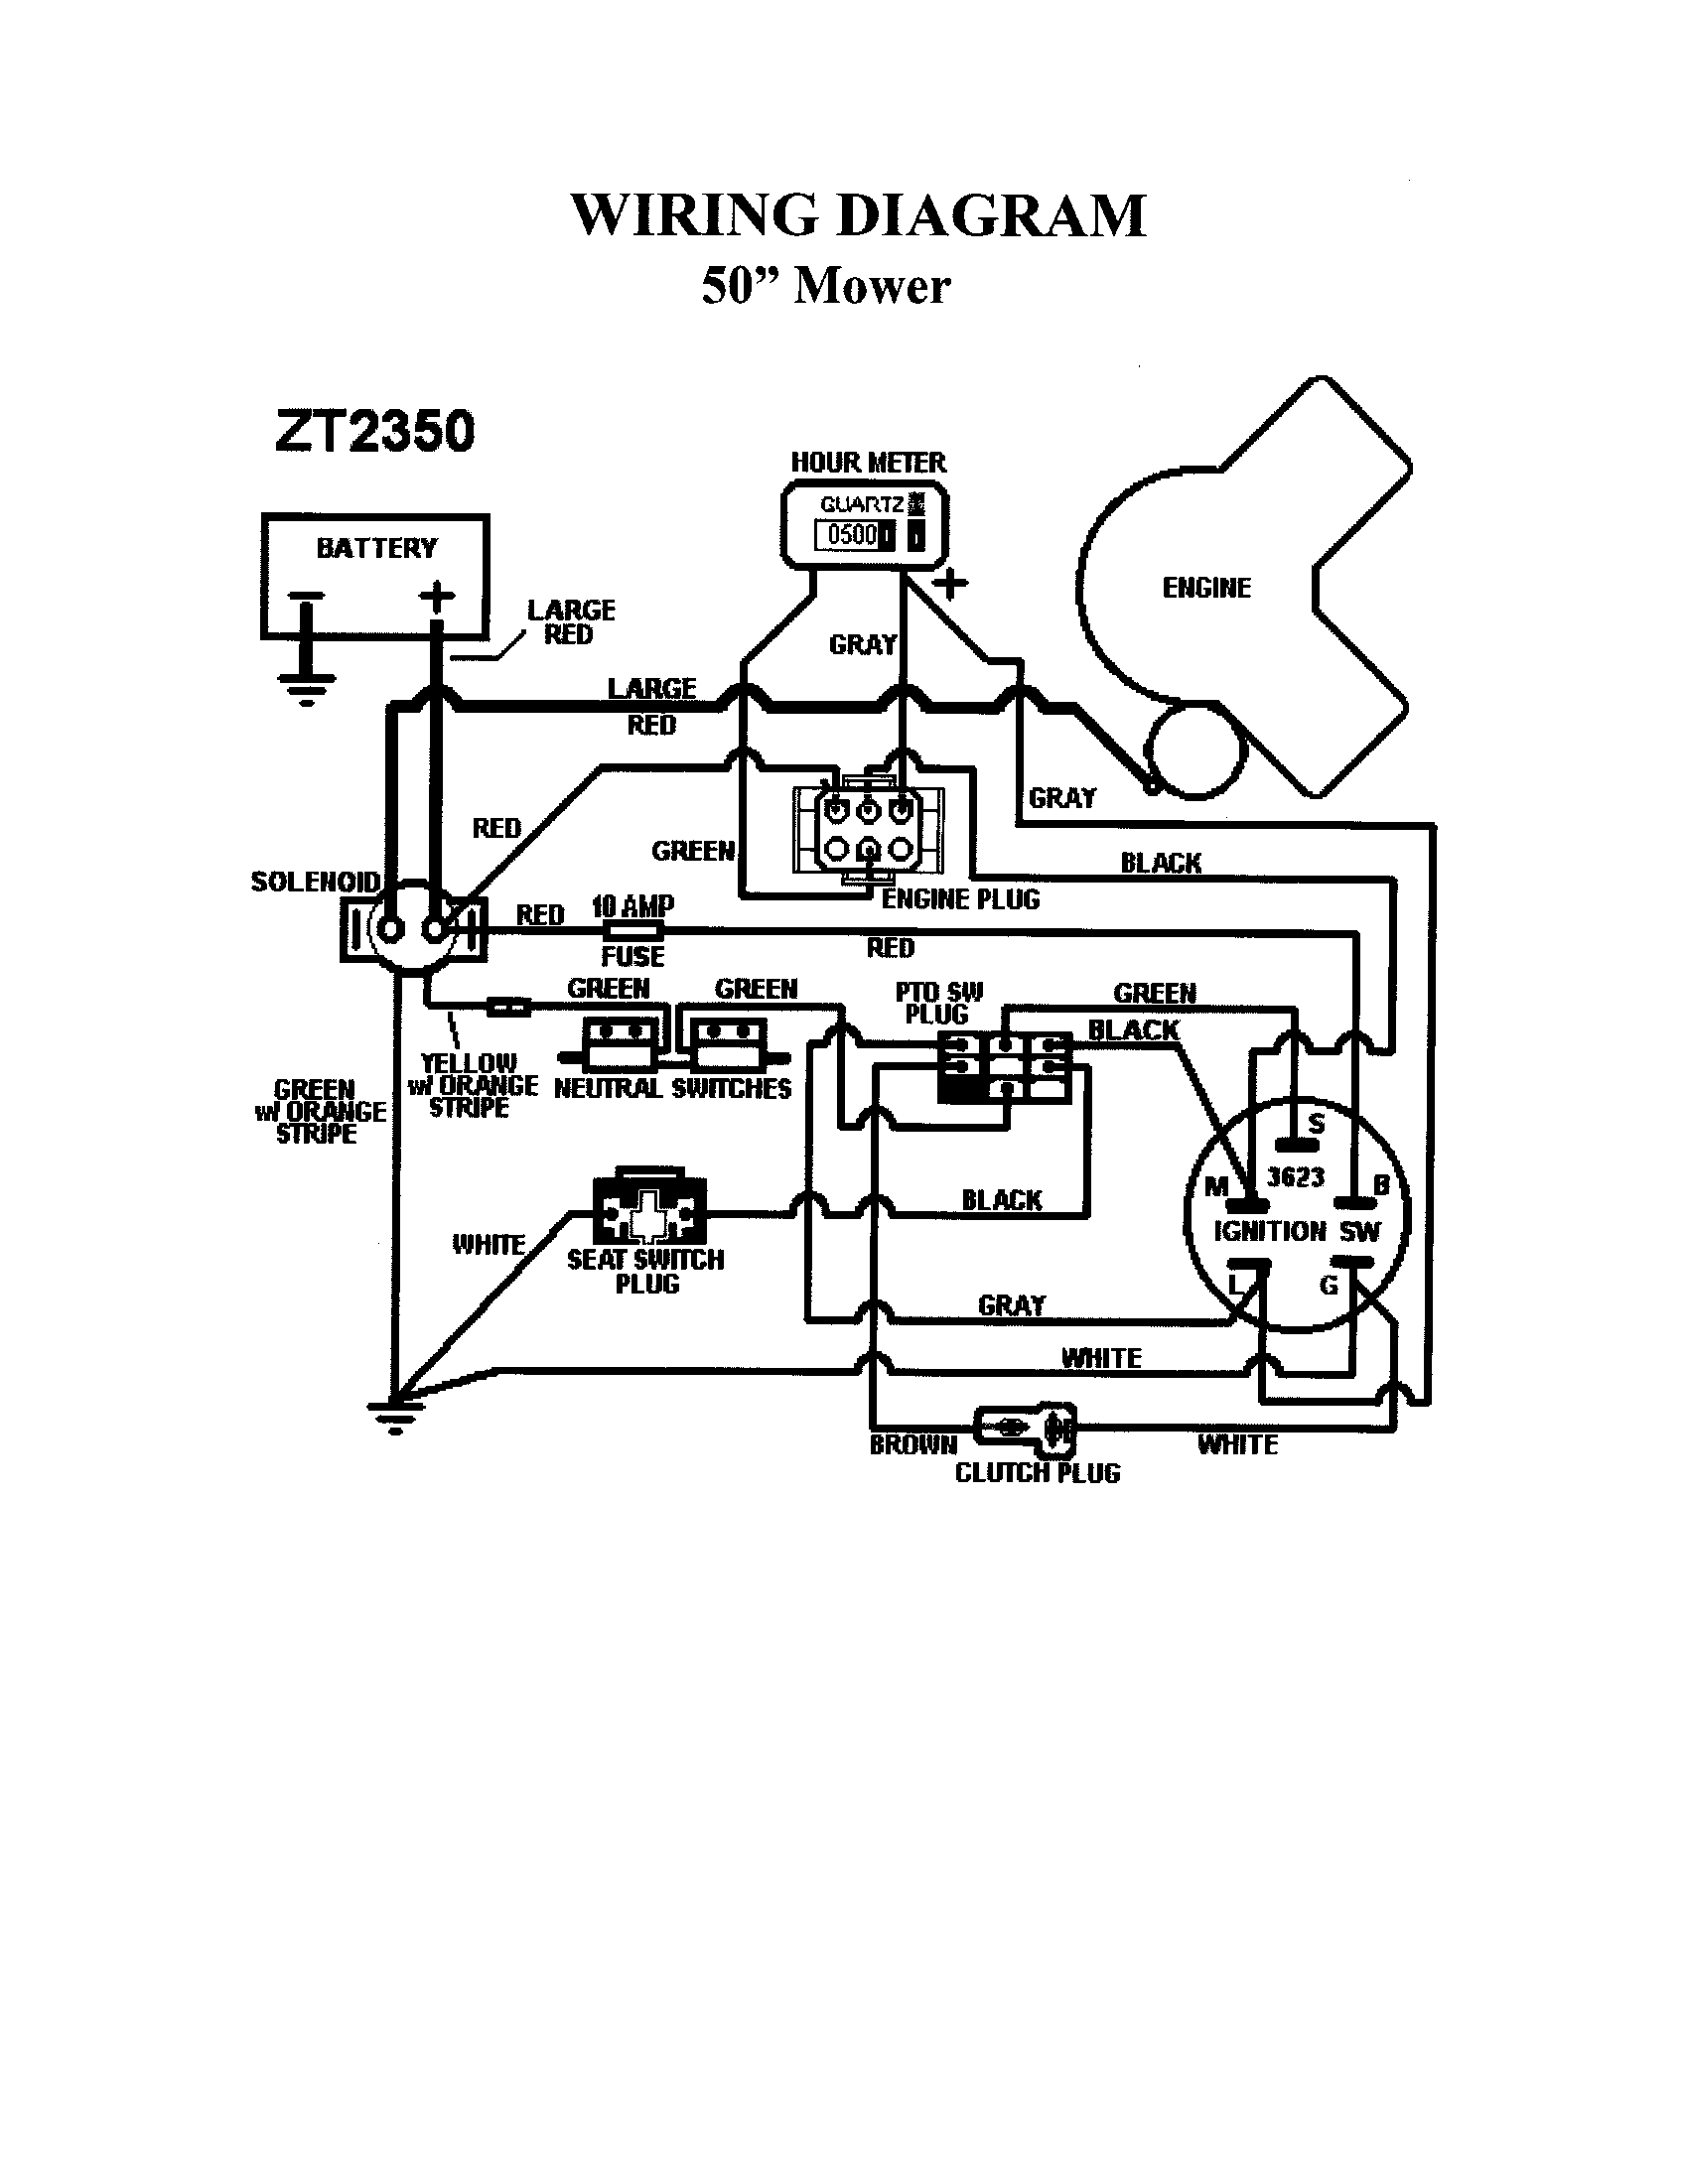 Swisher Mower Wiring Diagram Swisher 60 Trail Mower Wiring